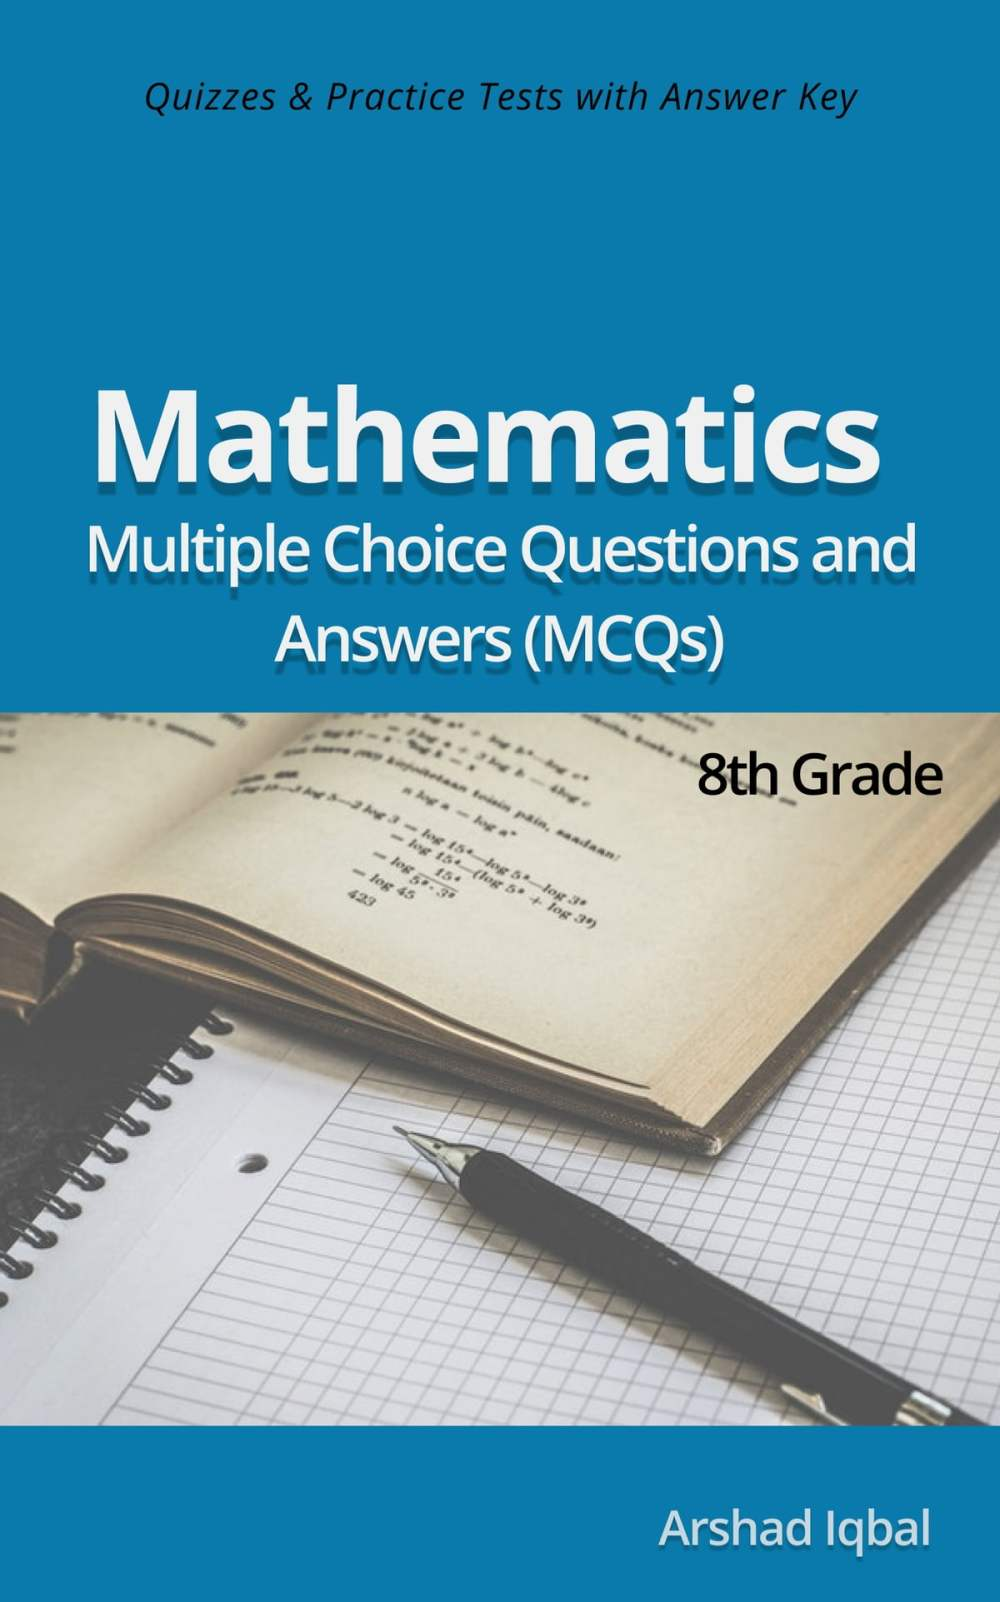 medium resolution of 8th Grade Math Multiple Choice Questions and Answers (MCQs): Quizzes \u0026  Practice Tests with Answer Key (Grade 8 Math Worksheets \u0026 Quick Study  Guide) eBook by Arshad Iqbal - 9781310500046   Rakuten Kobo United States